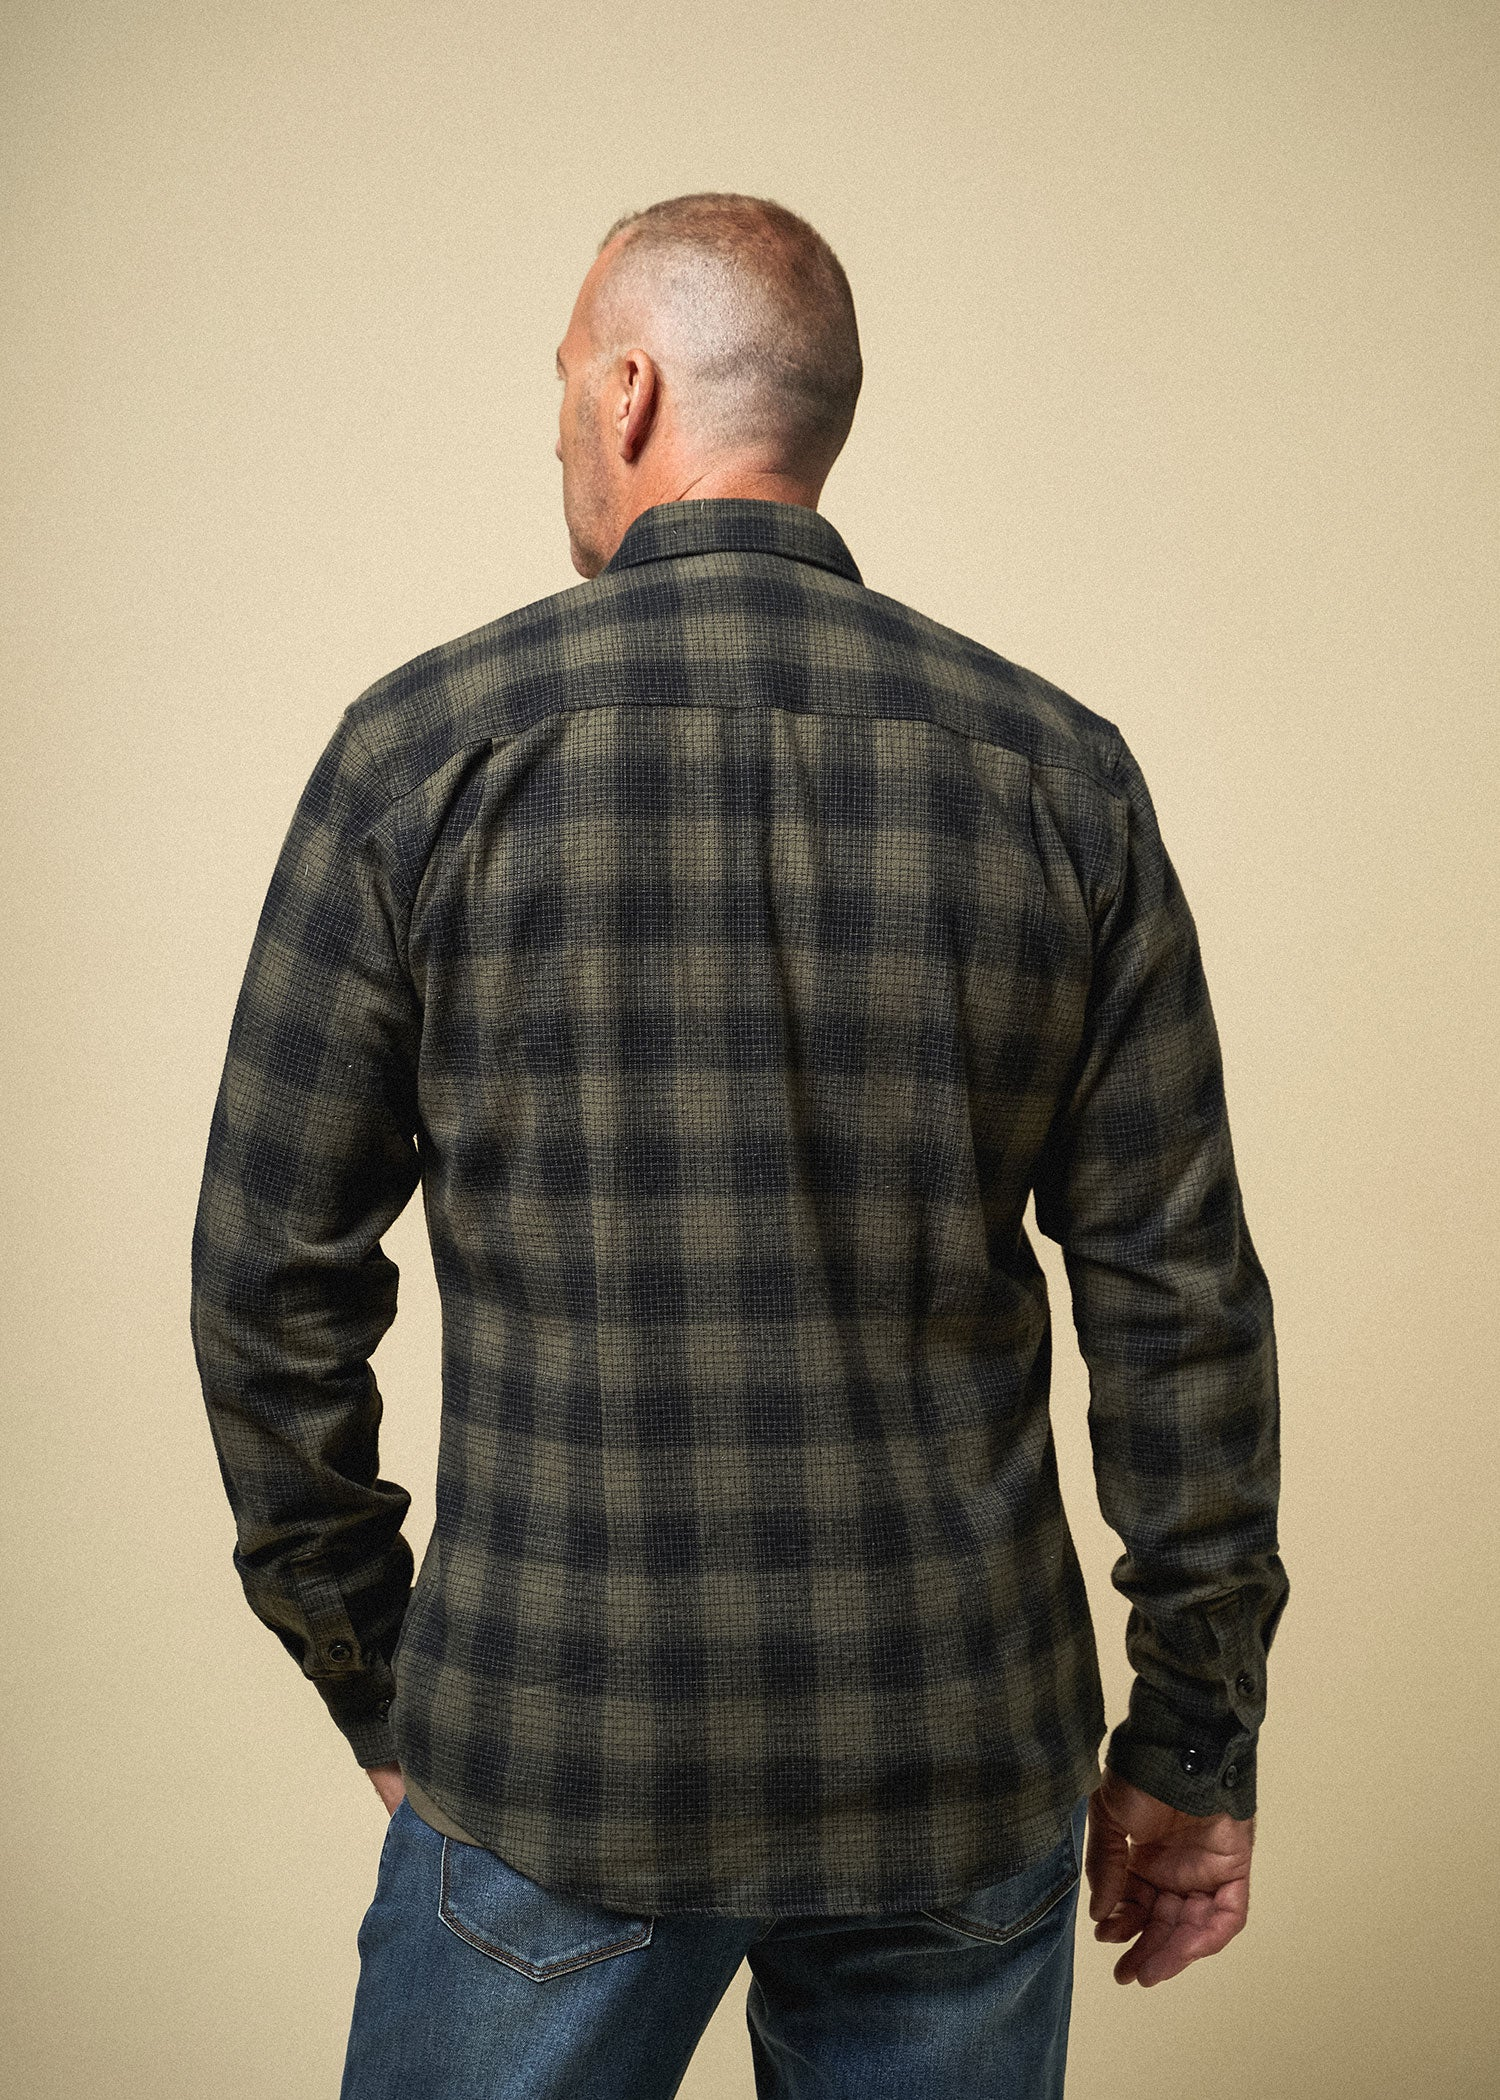 Longjohn-tallmens-heavyflannel-armyplaid-surplusgreen-back